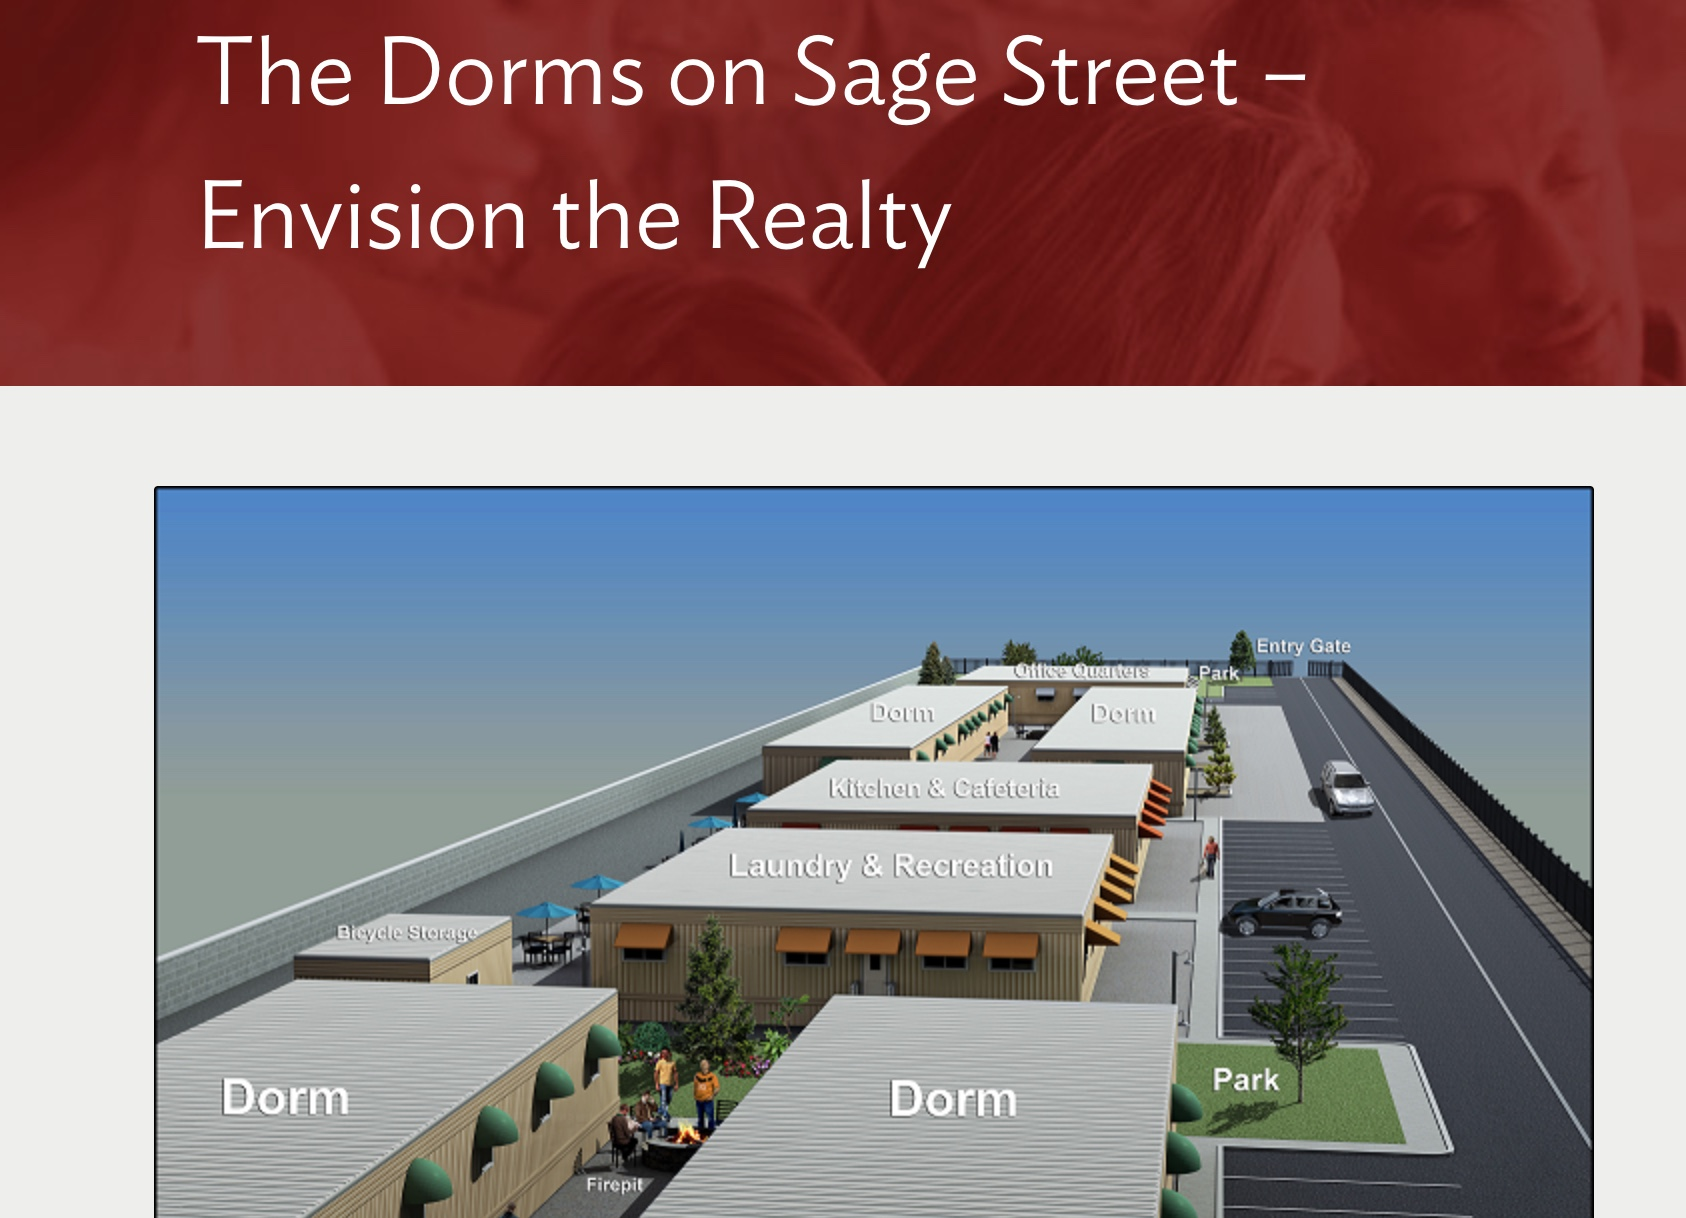 """The detailed drawings for the planned dorm can be found here:https://nevadafund.org/dorms-sage-street-envision-realty/ """"The feedback we've received is overwhelmingly positive,"""" Tscheekar said. """"People know that this isn't going to solve our housing crisis, but it is going to supply a big inventory of units. We're anticipating 200 units that would truly be affordable. So this is really the only project right now that is developing that if you are making minimum wage, you would be able to afford a safe and dry home."""""""